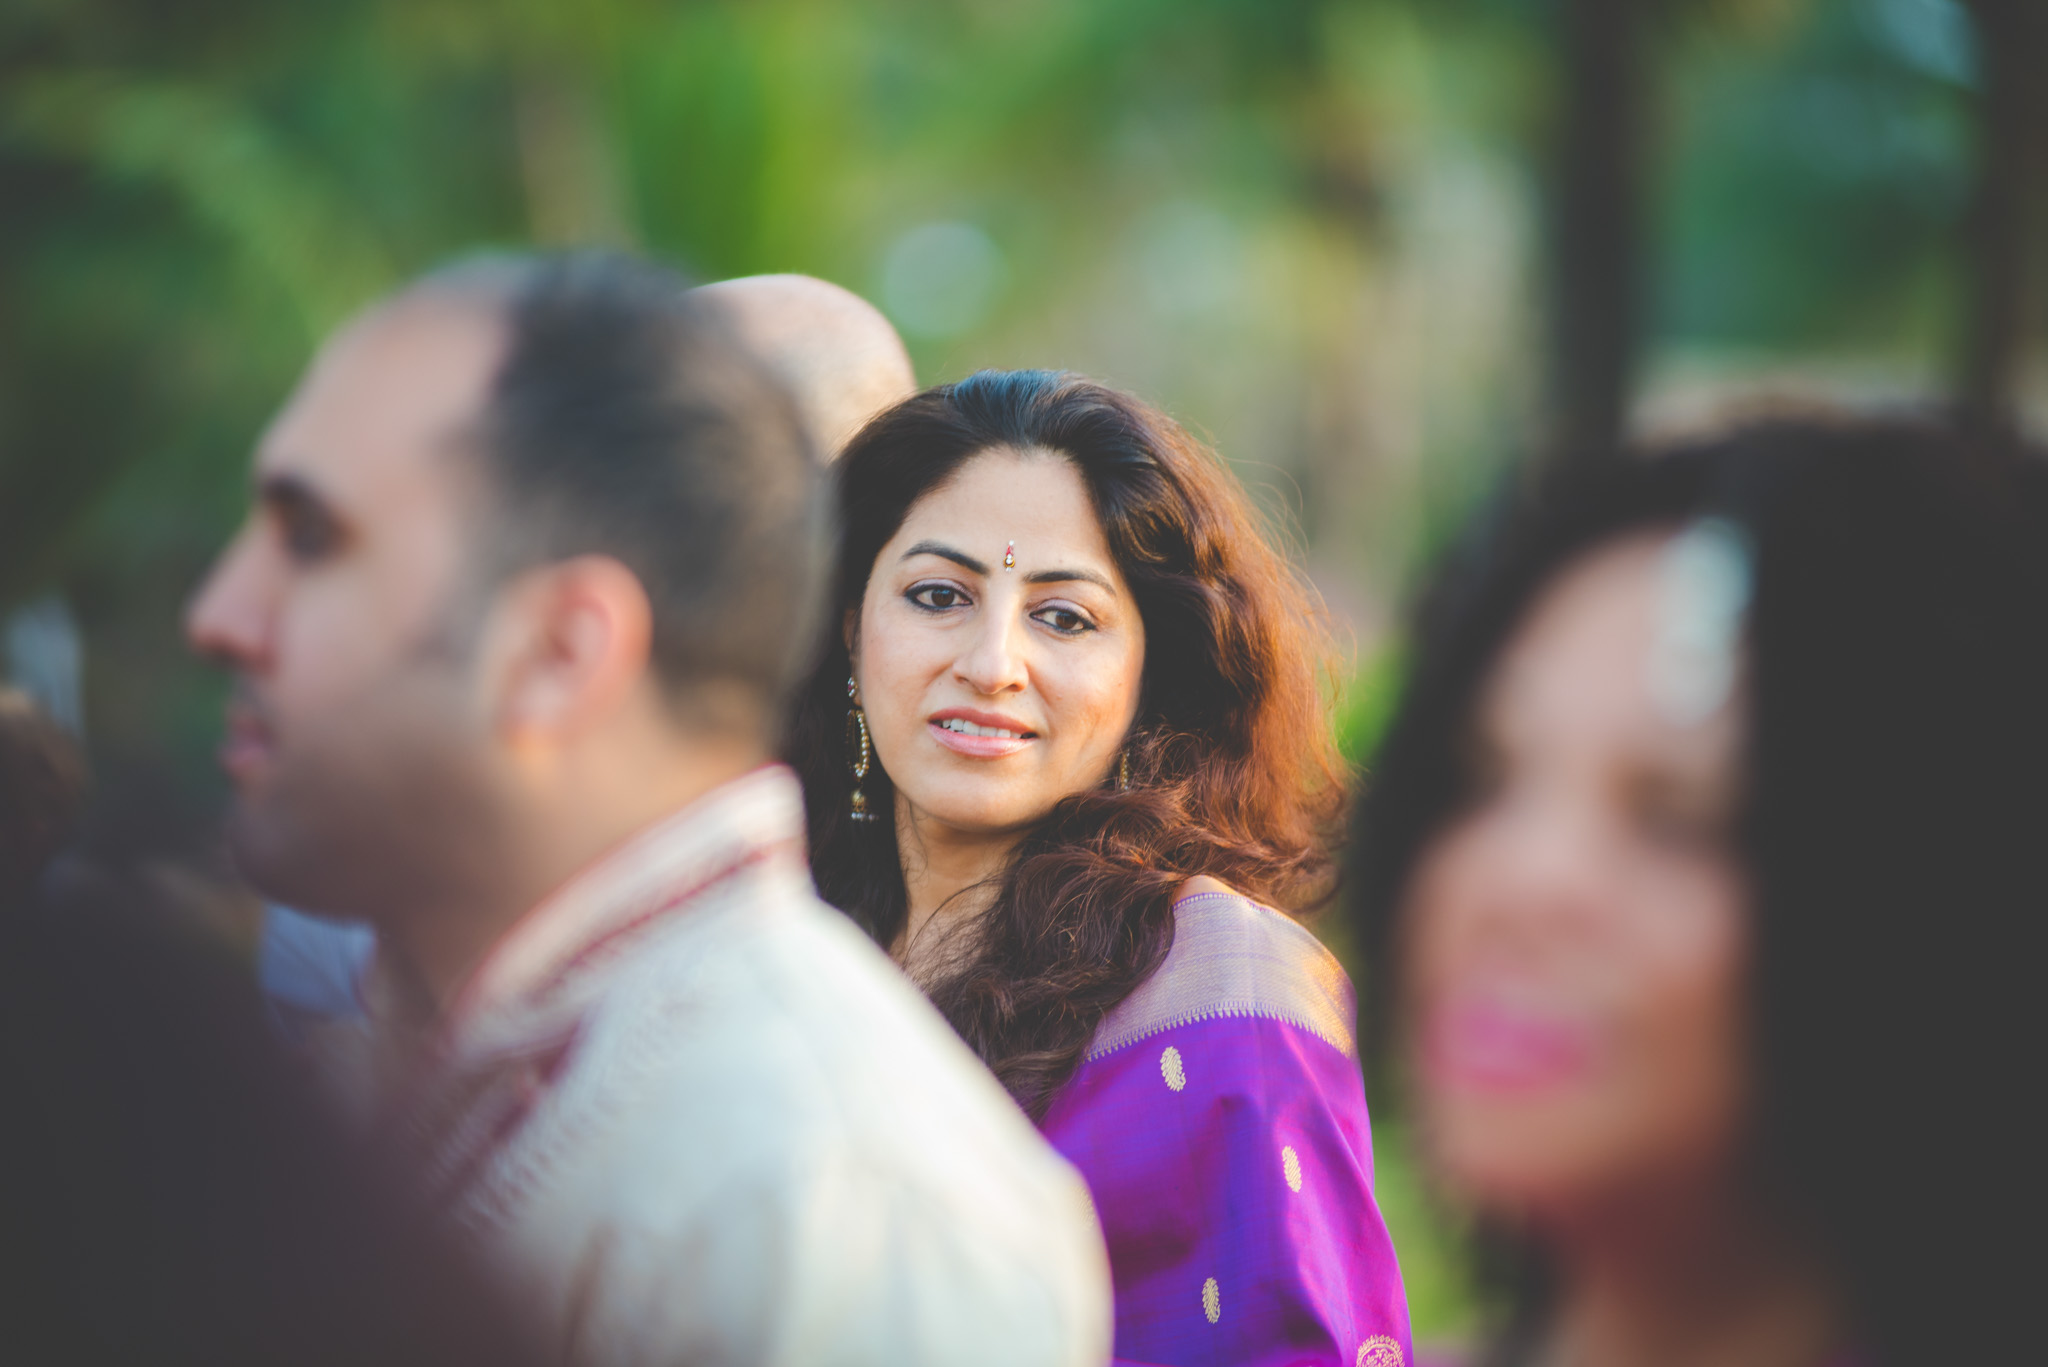 Candid-Wedding-Photography-WhatKnot-Goa-96